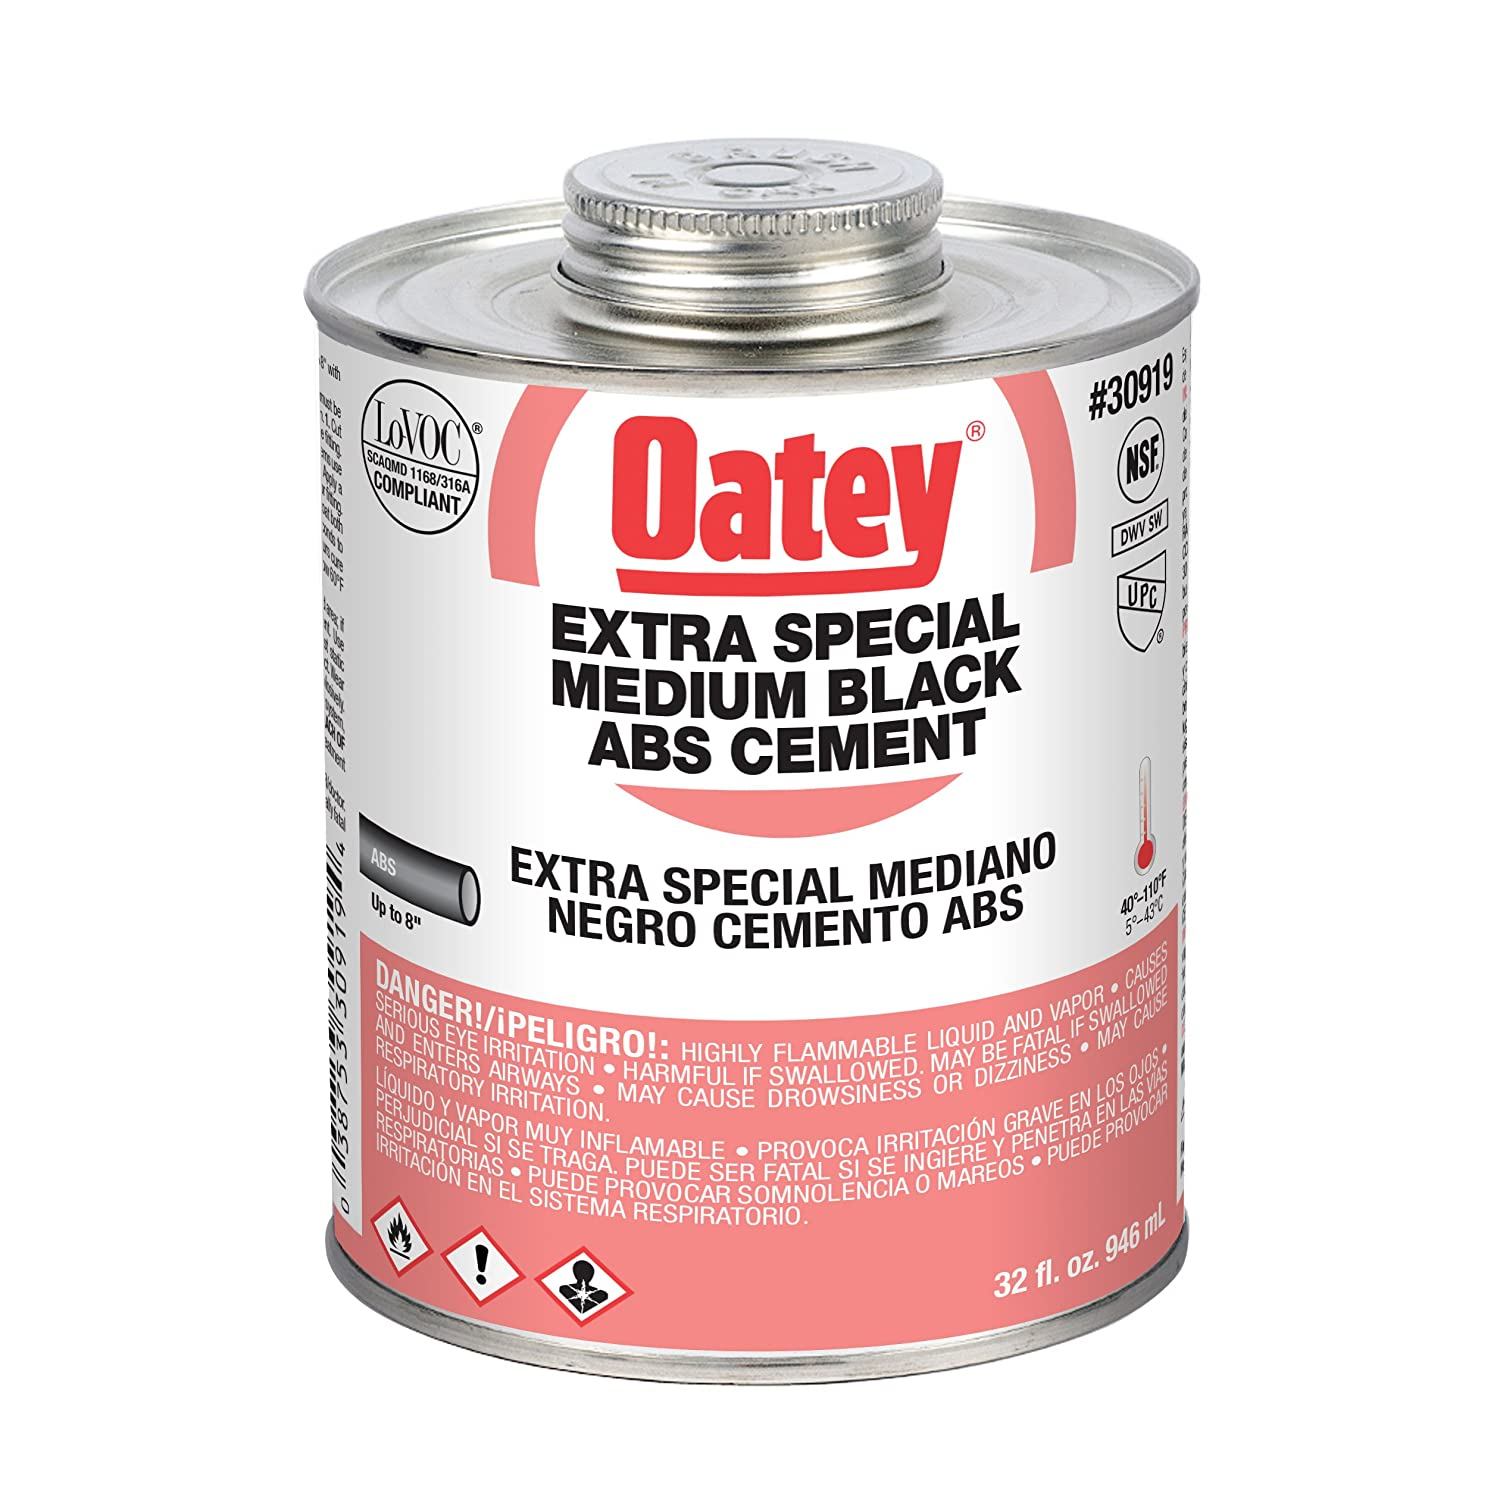 Oatey 30917 Hydraulic Cements, 8 oz, Black